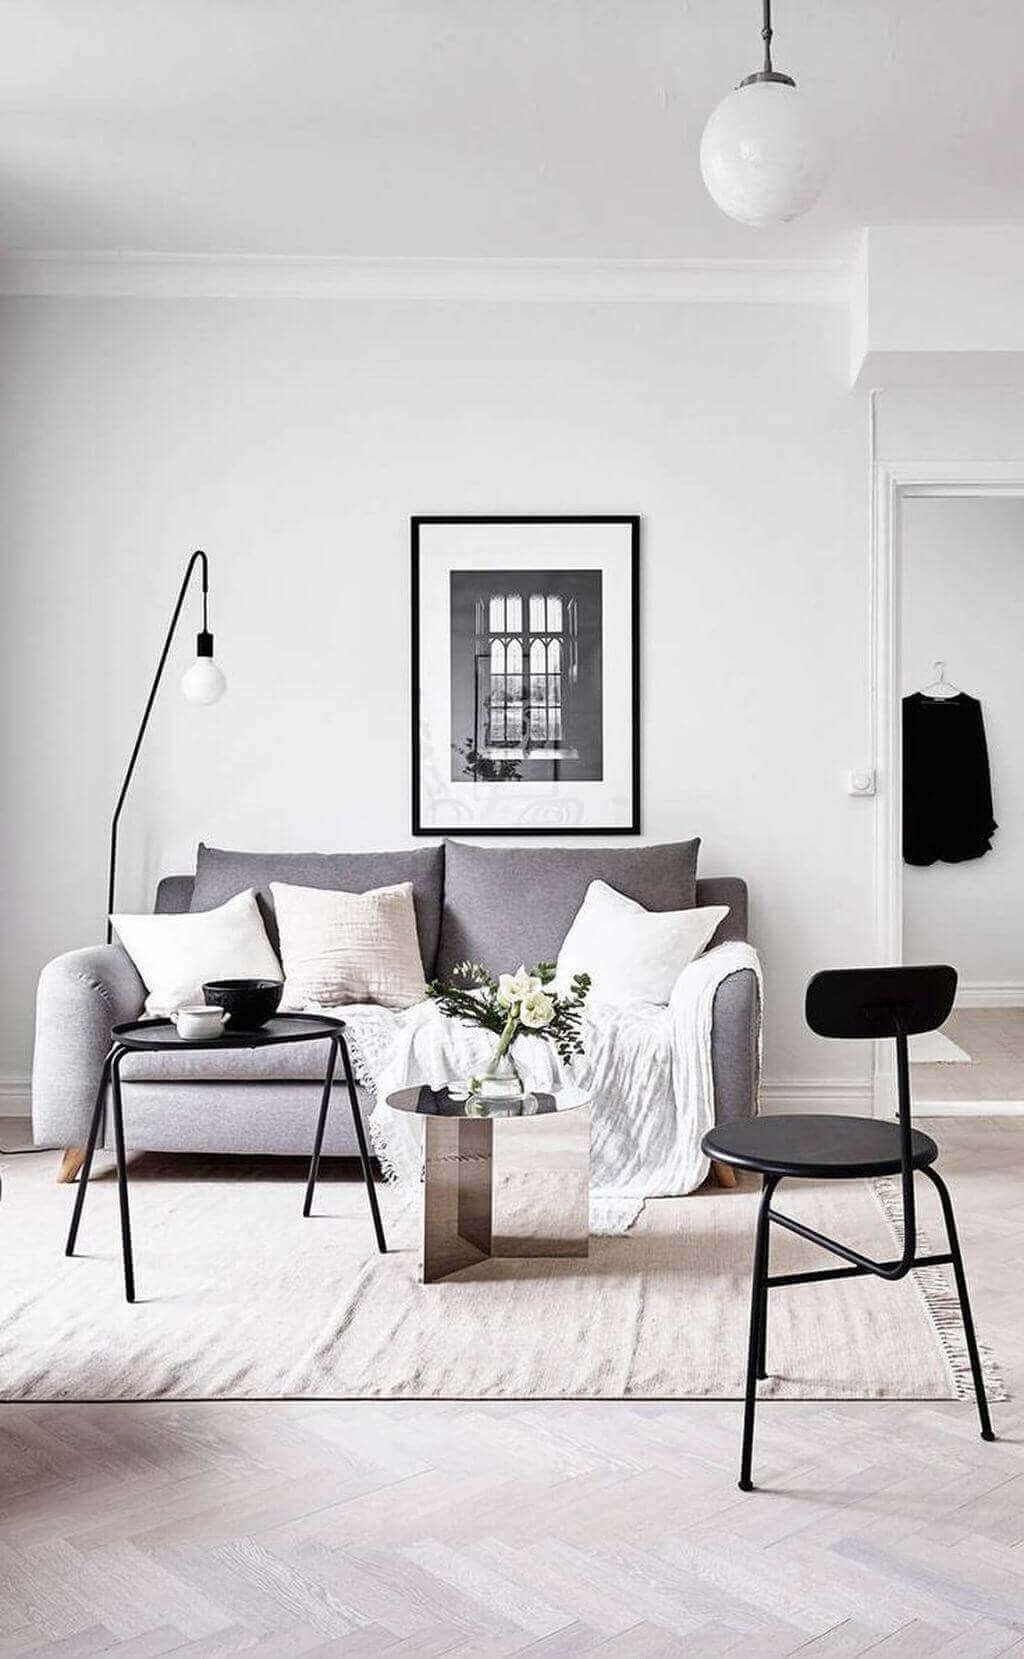 30 Scandinavian Living Room Design Ideas Scandinavian Design Living Room Minimalist Living Room Living Room Scandinavian